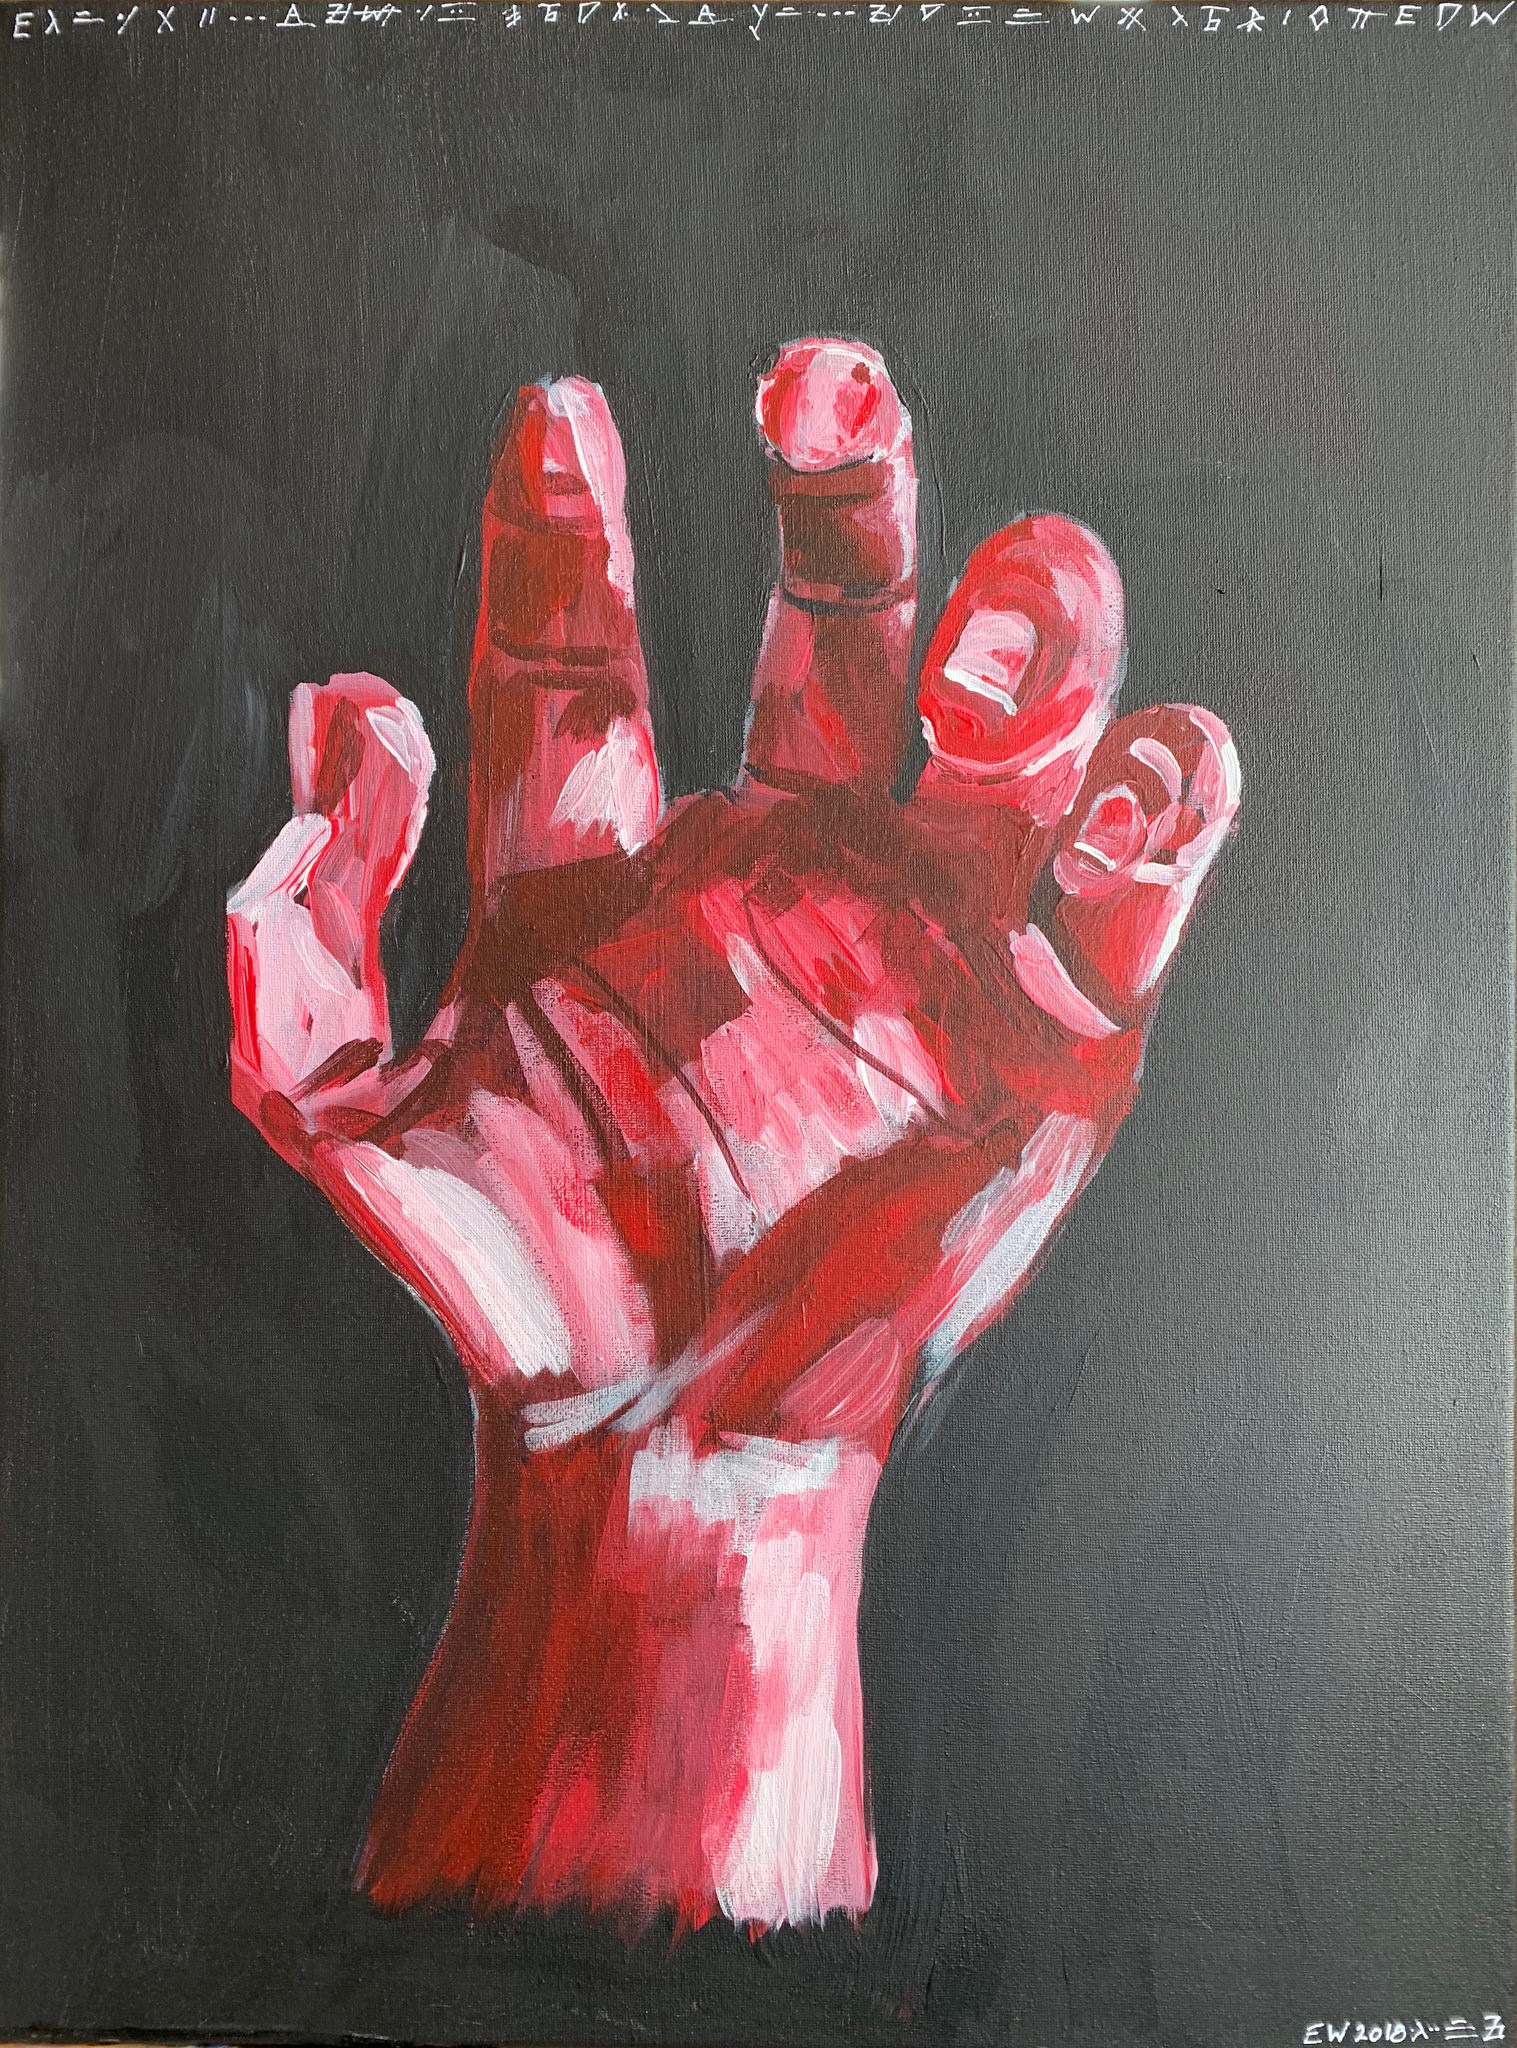 Giant Hand Upright. Acrylic on Canvas. 18x24. 2018